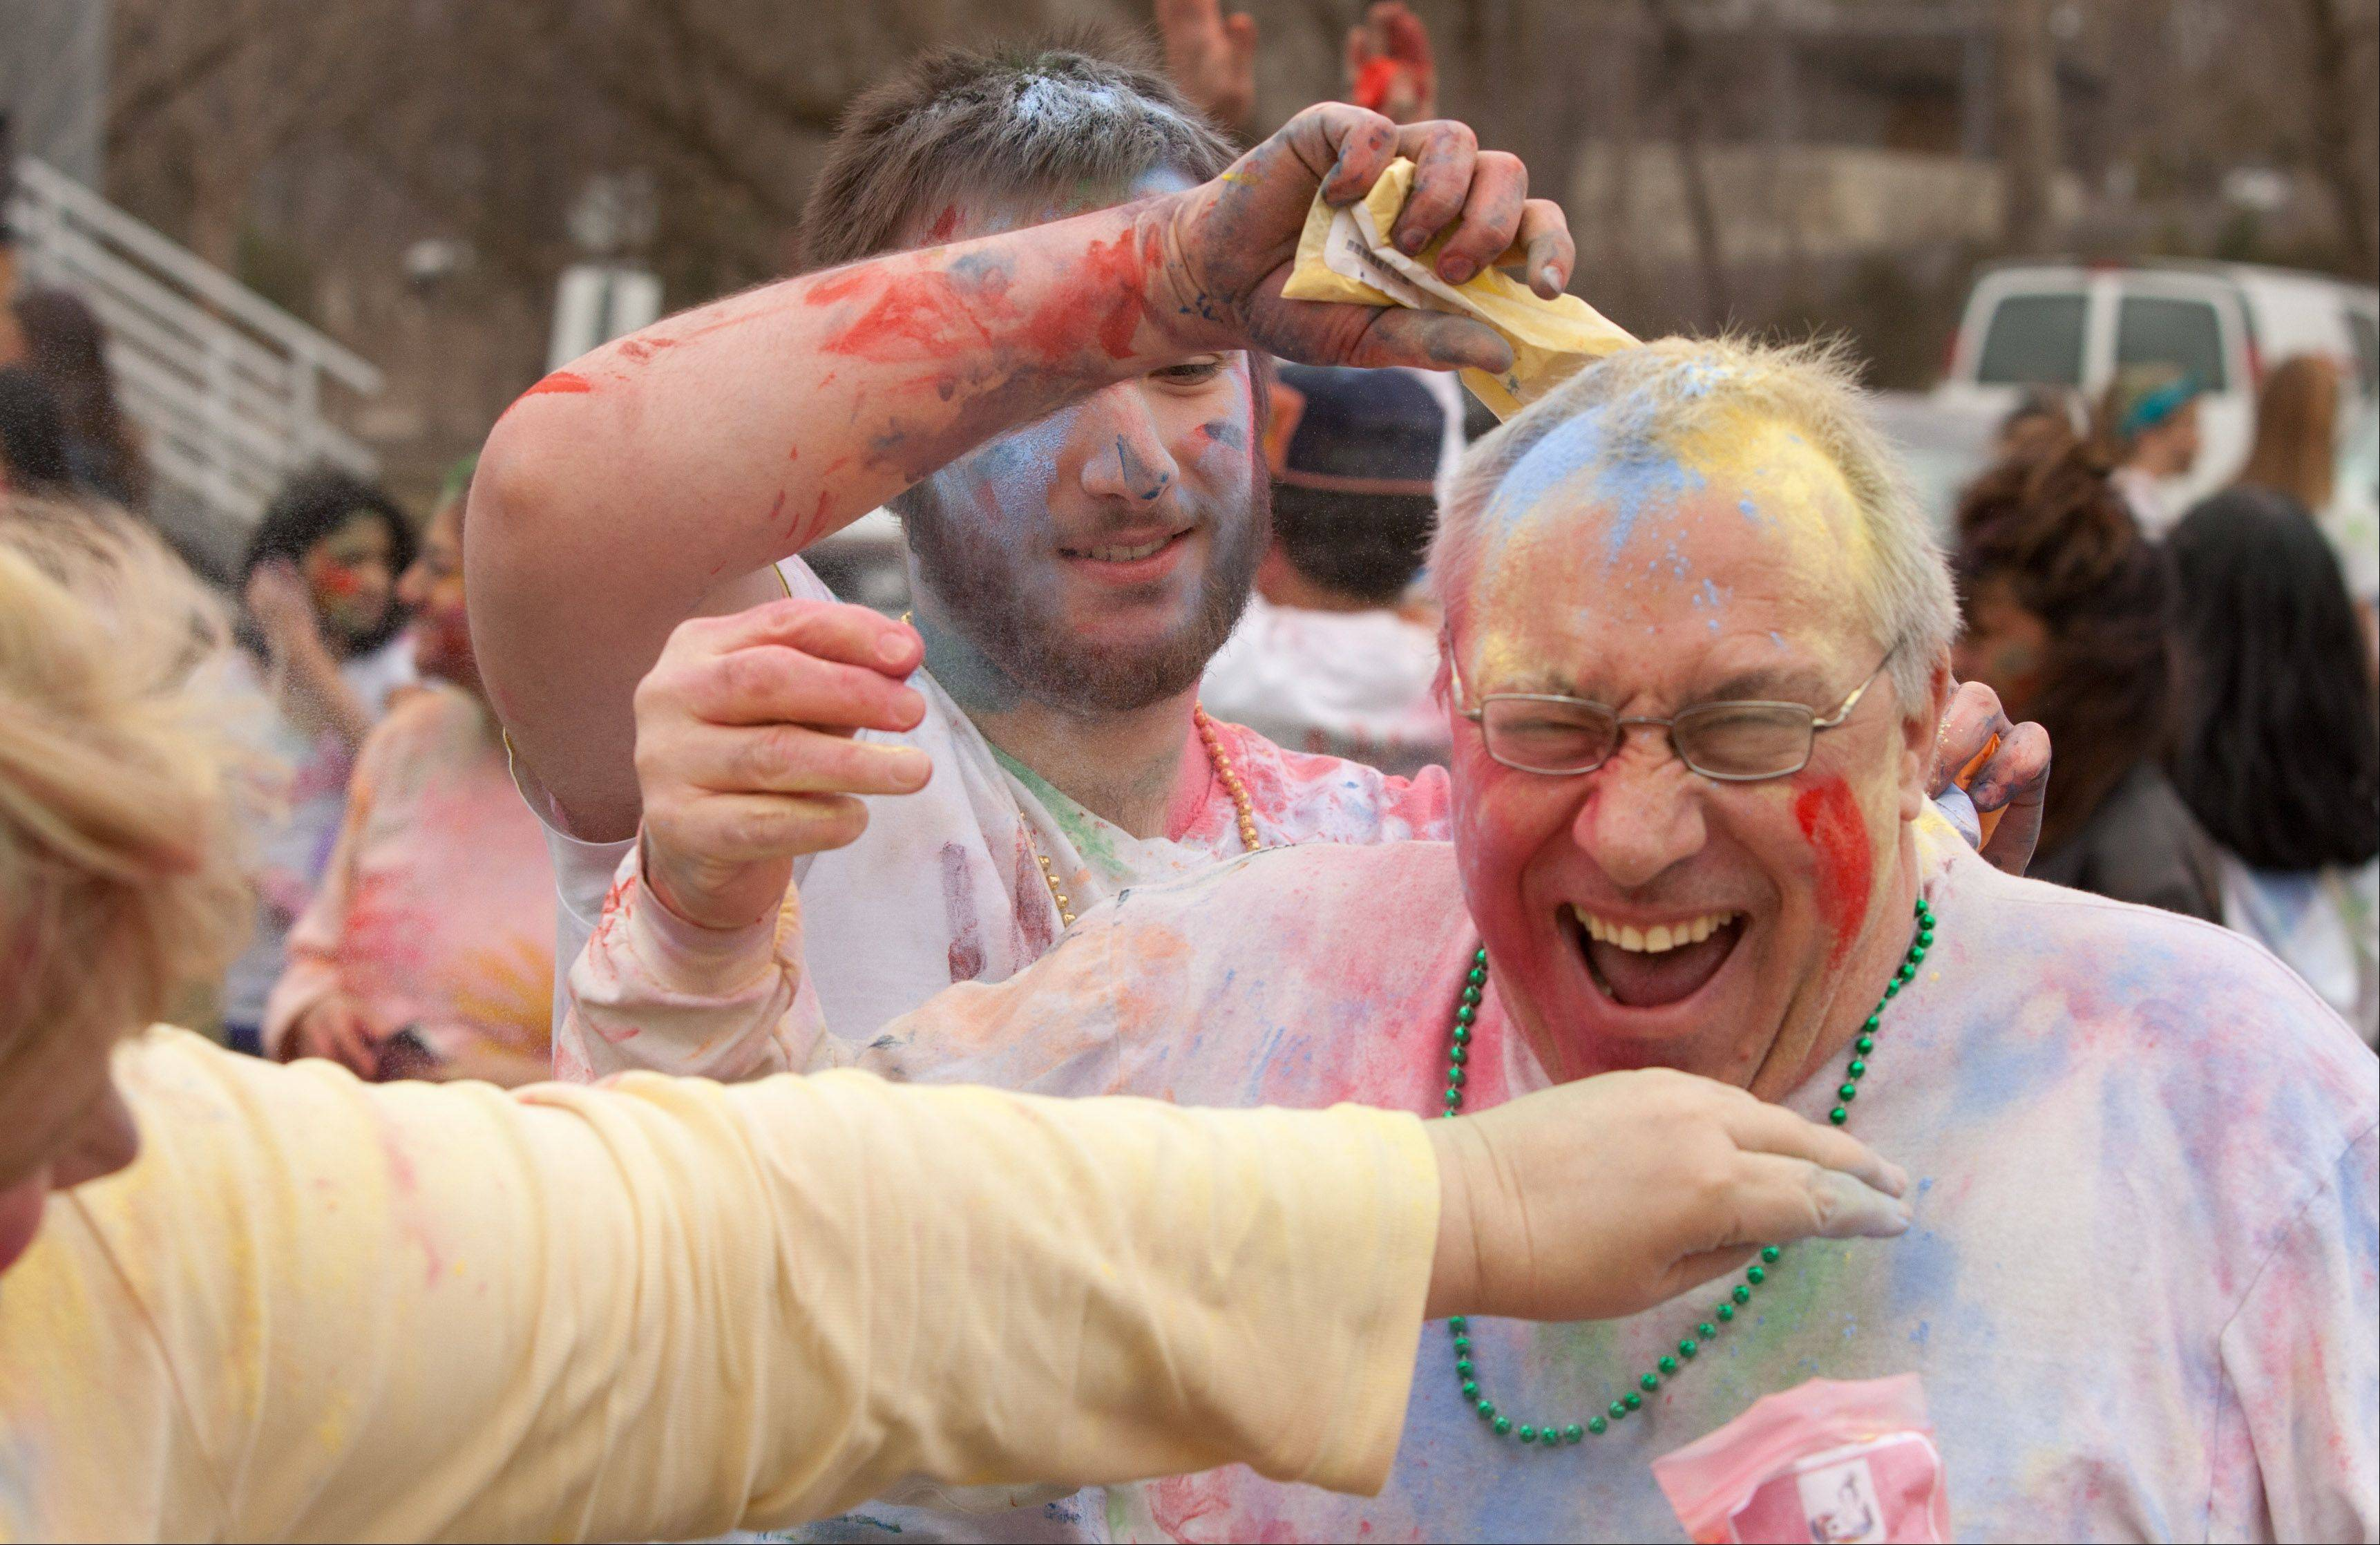 Karl Michalec, of Elk Grove, gets showered by his son Ian and wife Jeanie during the Simply Vedic Cultural Society's Festival of Colors, that marks the passing of winter and arrival of spring.